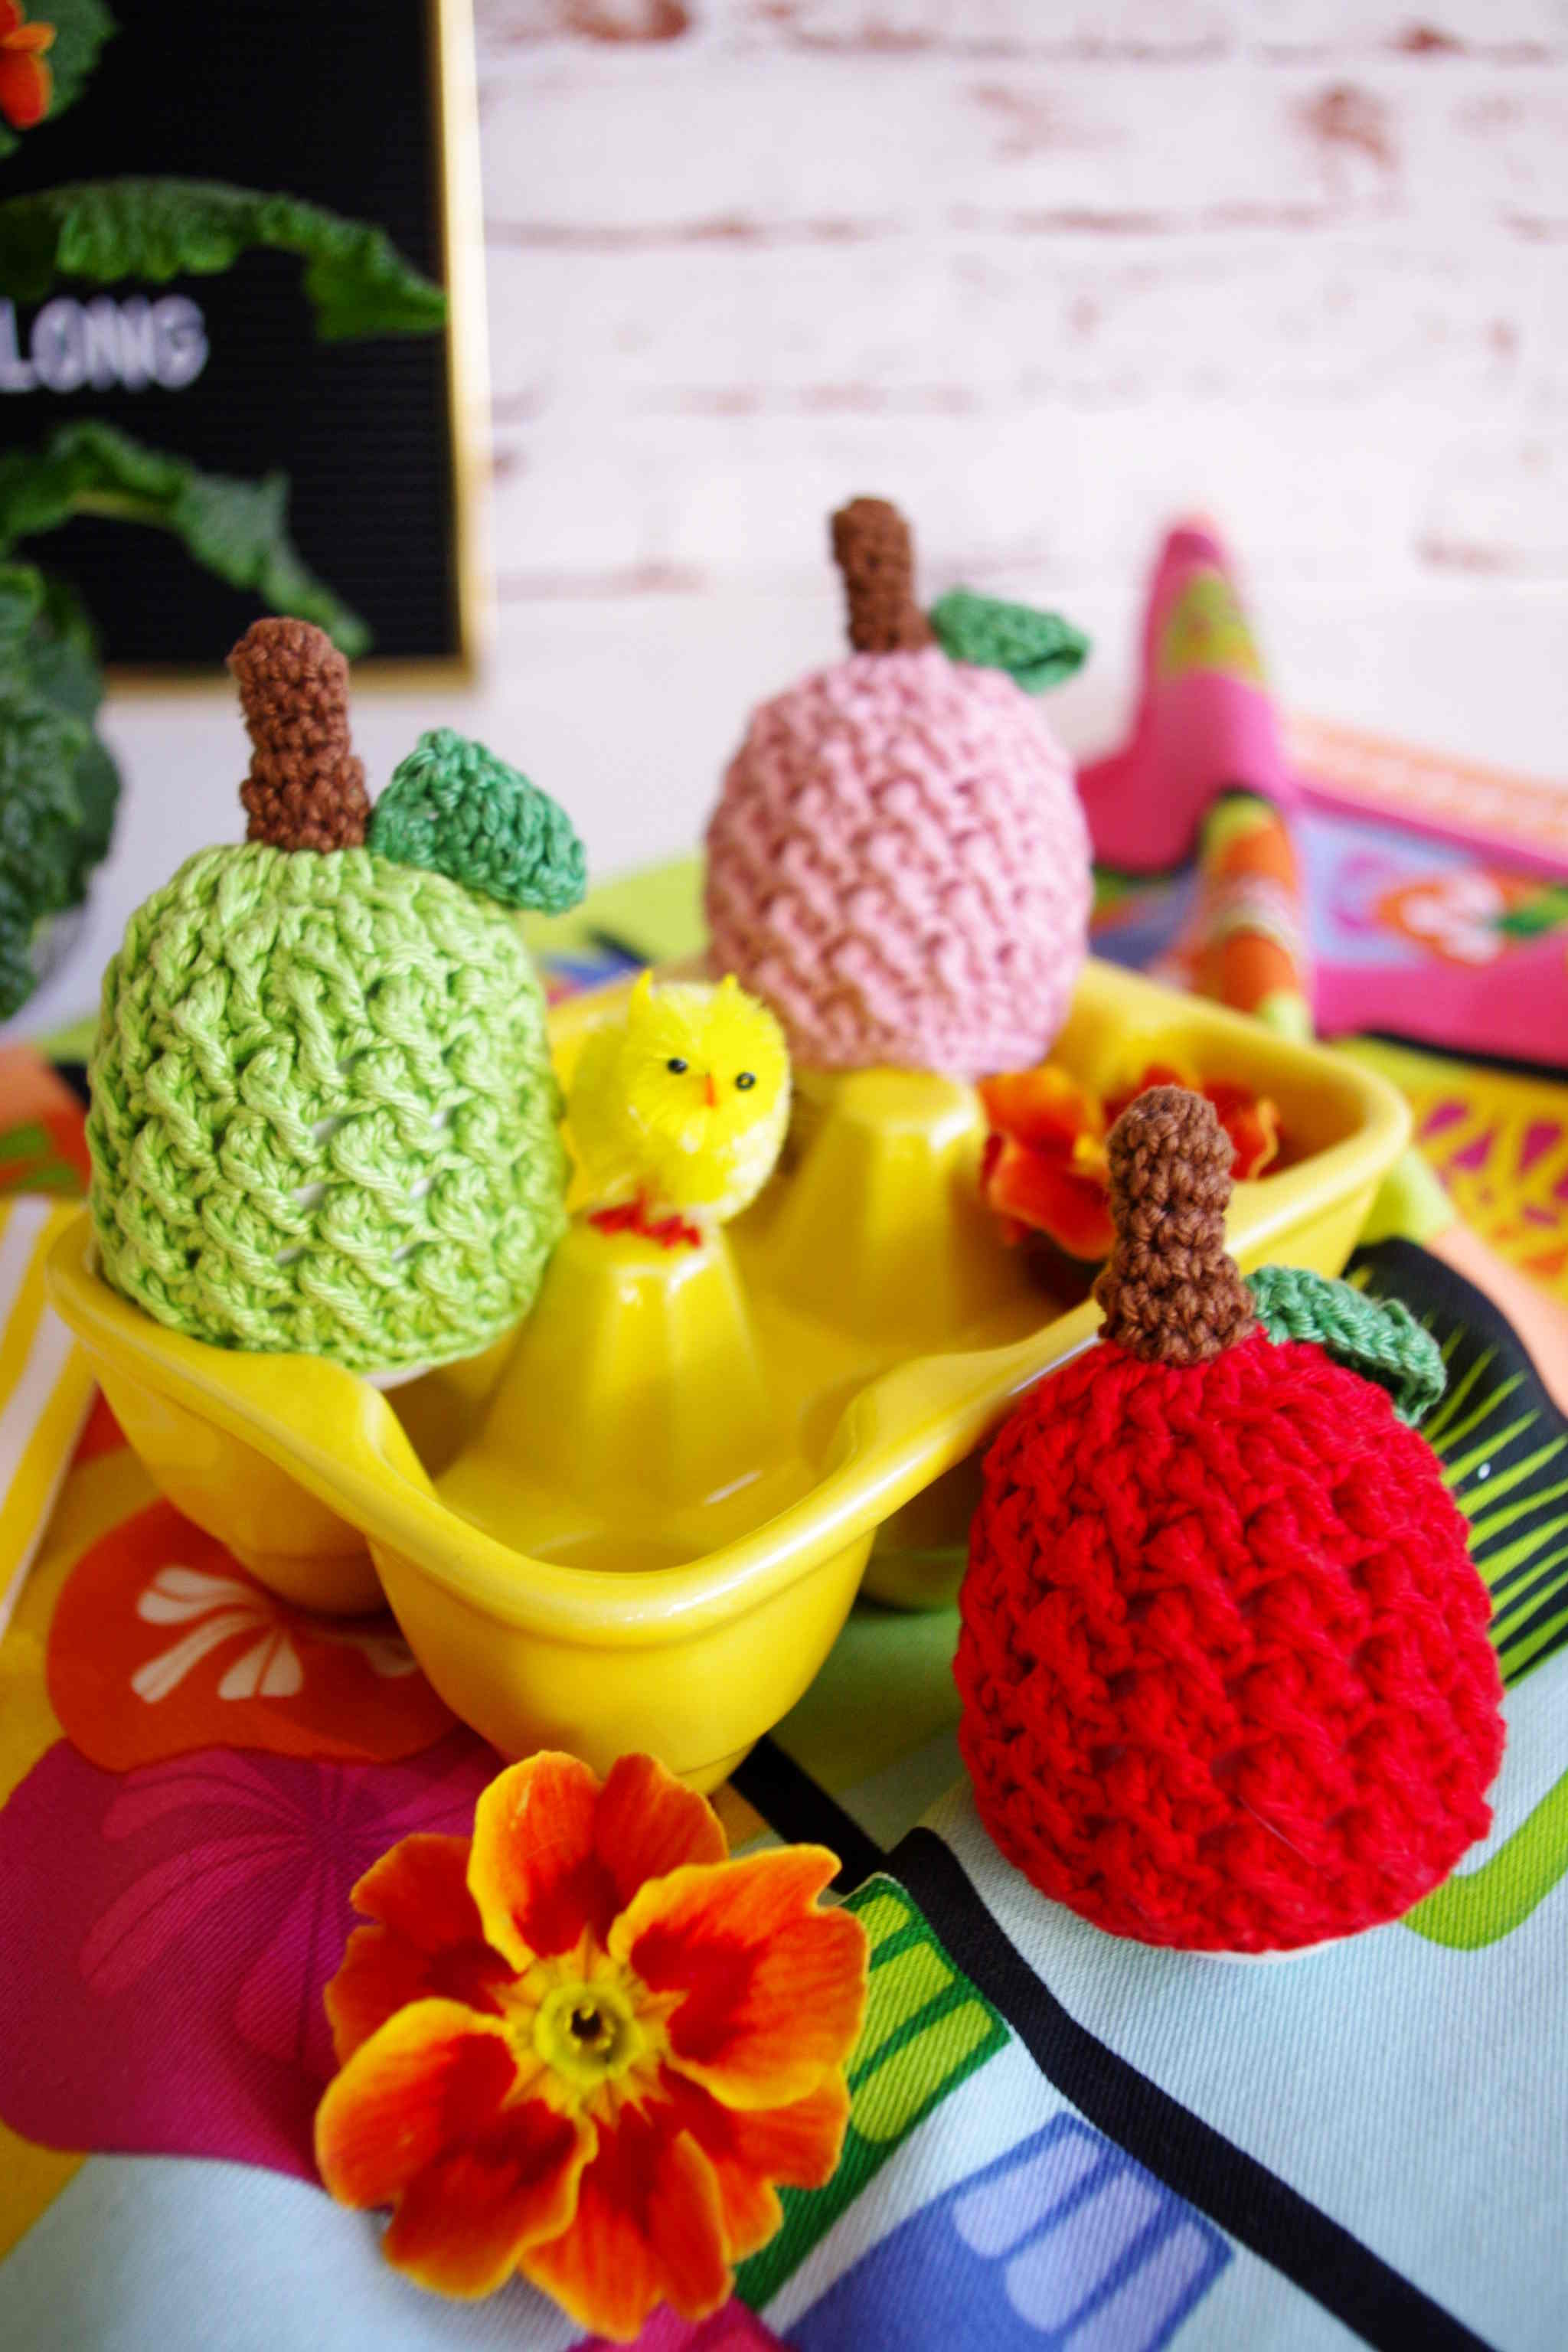 Gehäkelte Eierwärmer in Apfelform – crochet egg warmer in the shape of apples